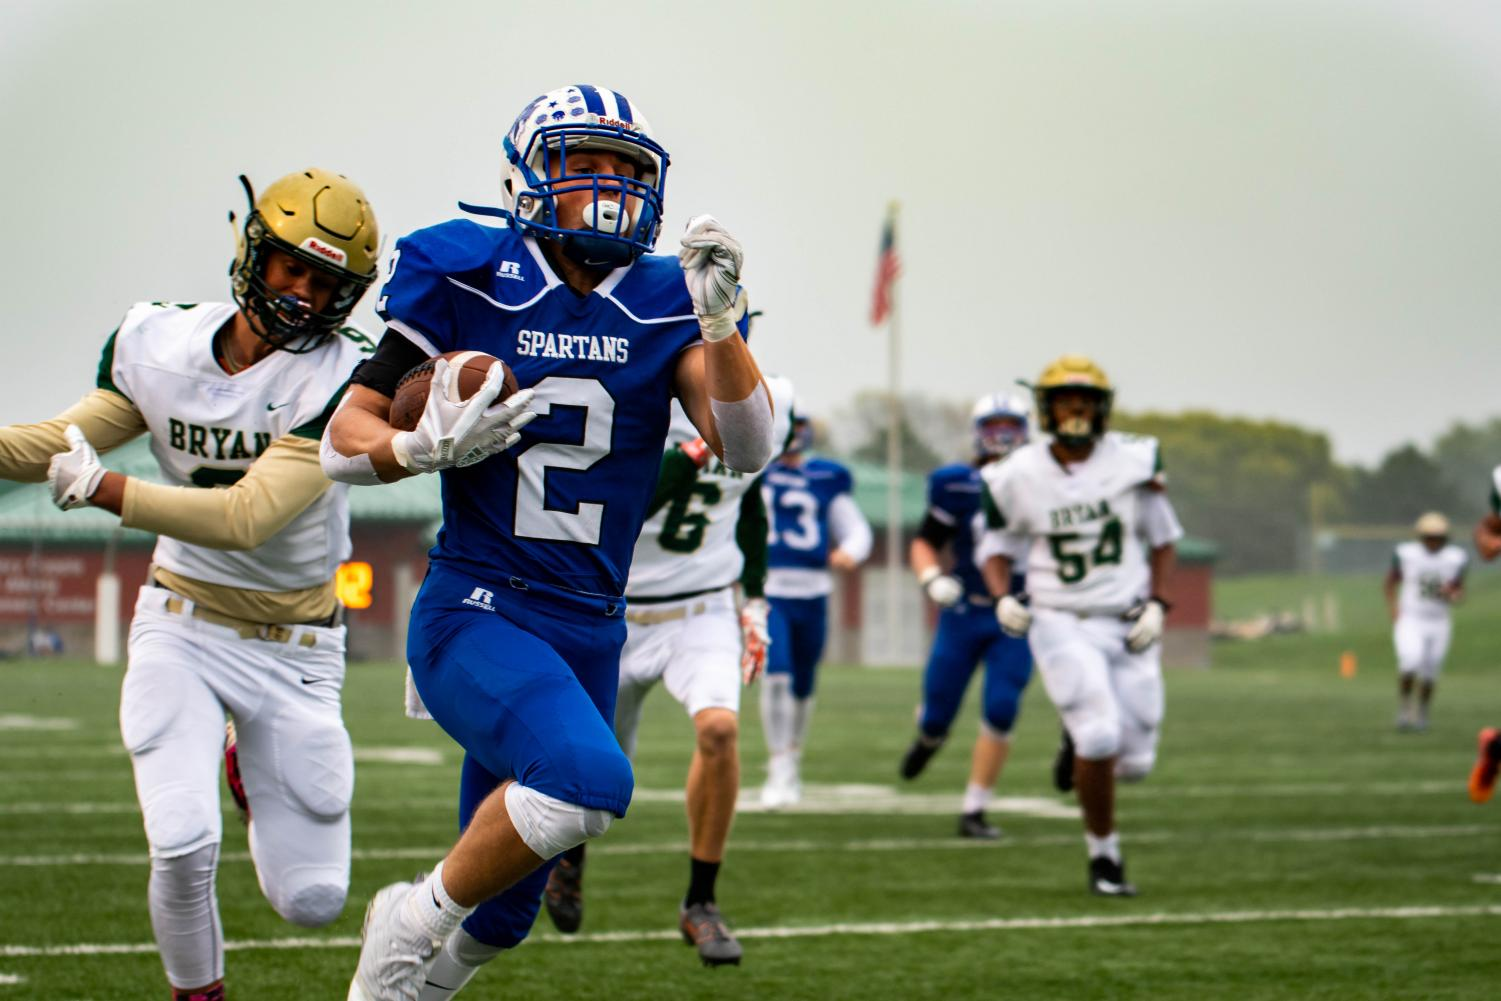 Lincoln East's AJ Muthersbaugh rushes for a touchdown Friday afternoon against Omaha Bryan.